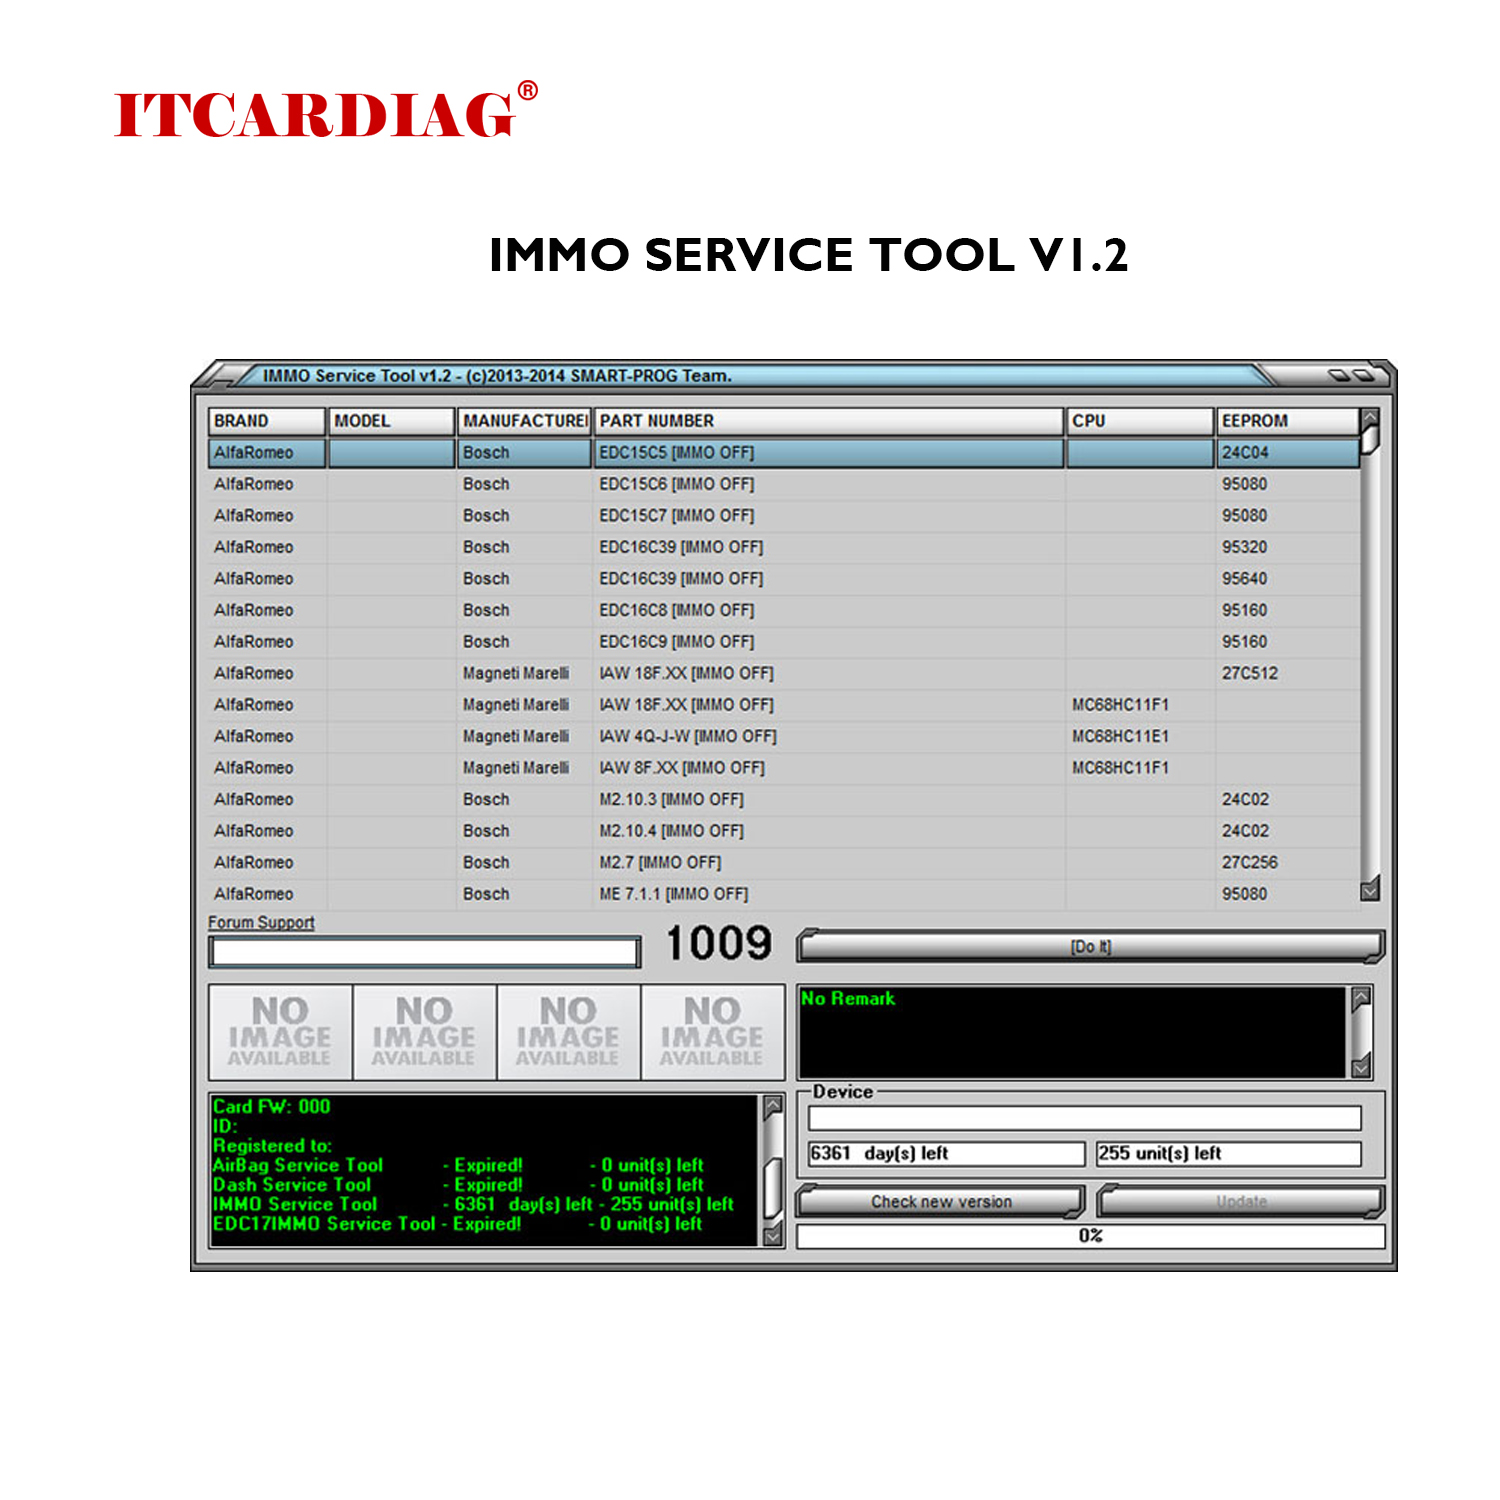 2019 Edc 17 IMMO SERVICE TOOL V1 2 PIN Code and Immo off Works Without Registration For AlfaRomeo Audi BMW Citroen Fiat